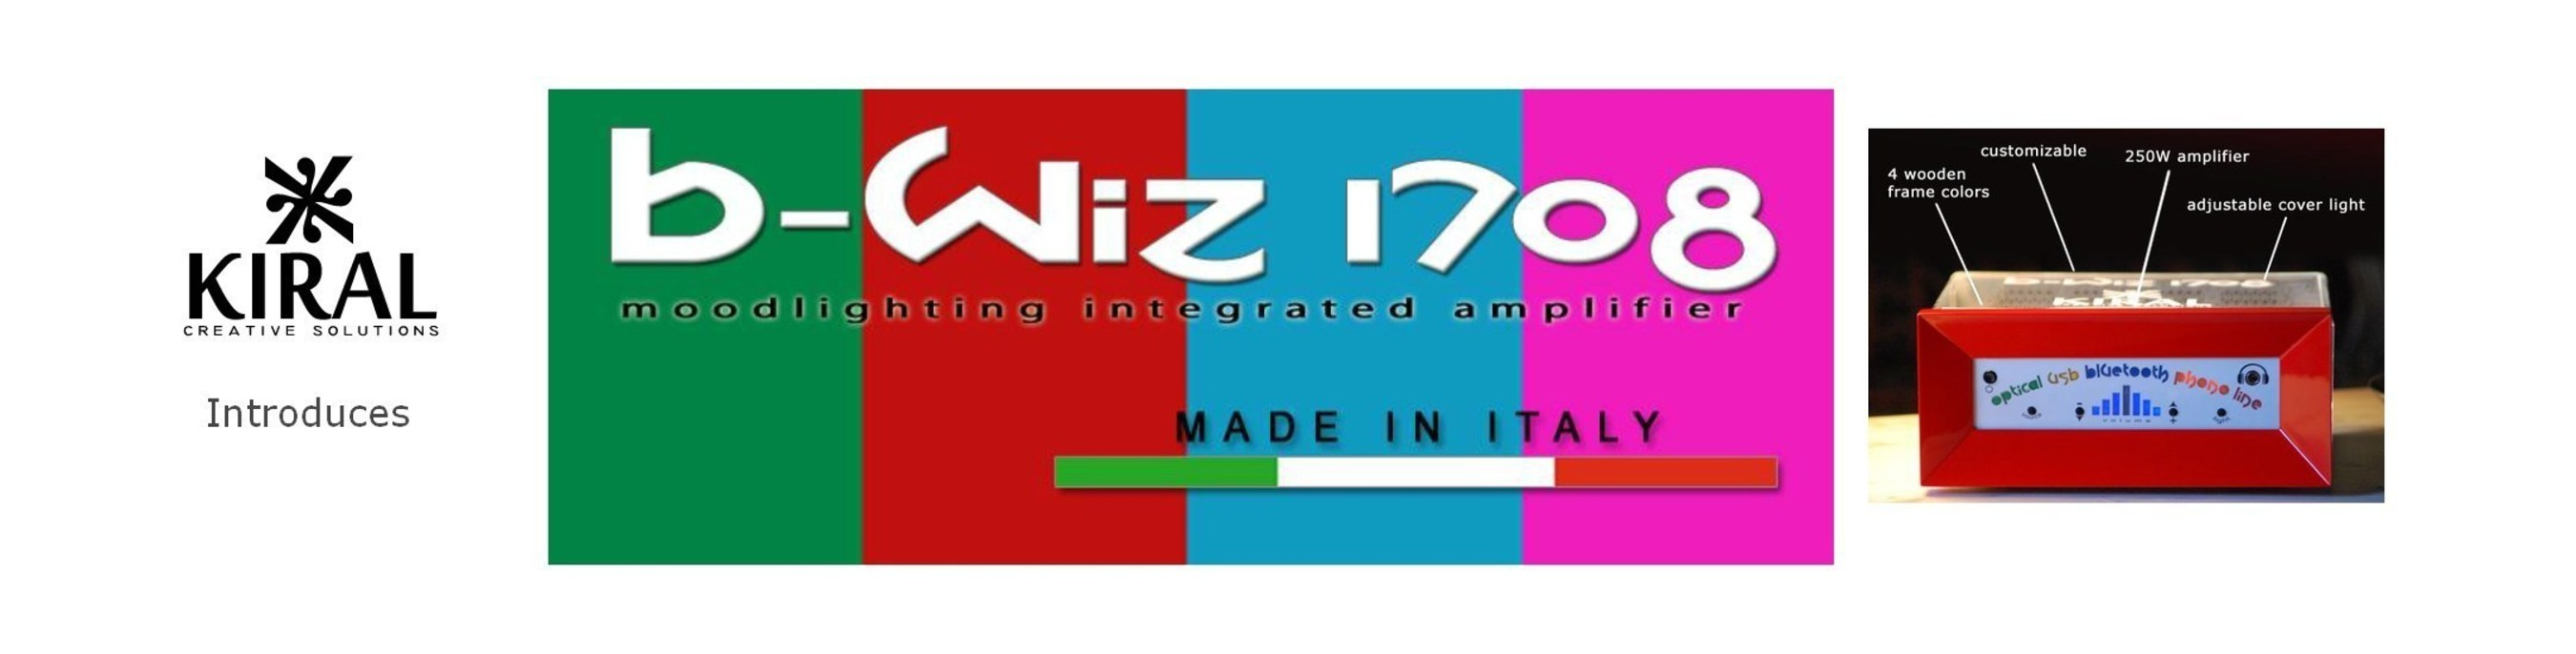 B-Wiz 1708 Takes Modern Amplifiers to the Next Level